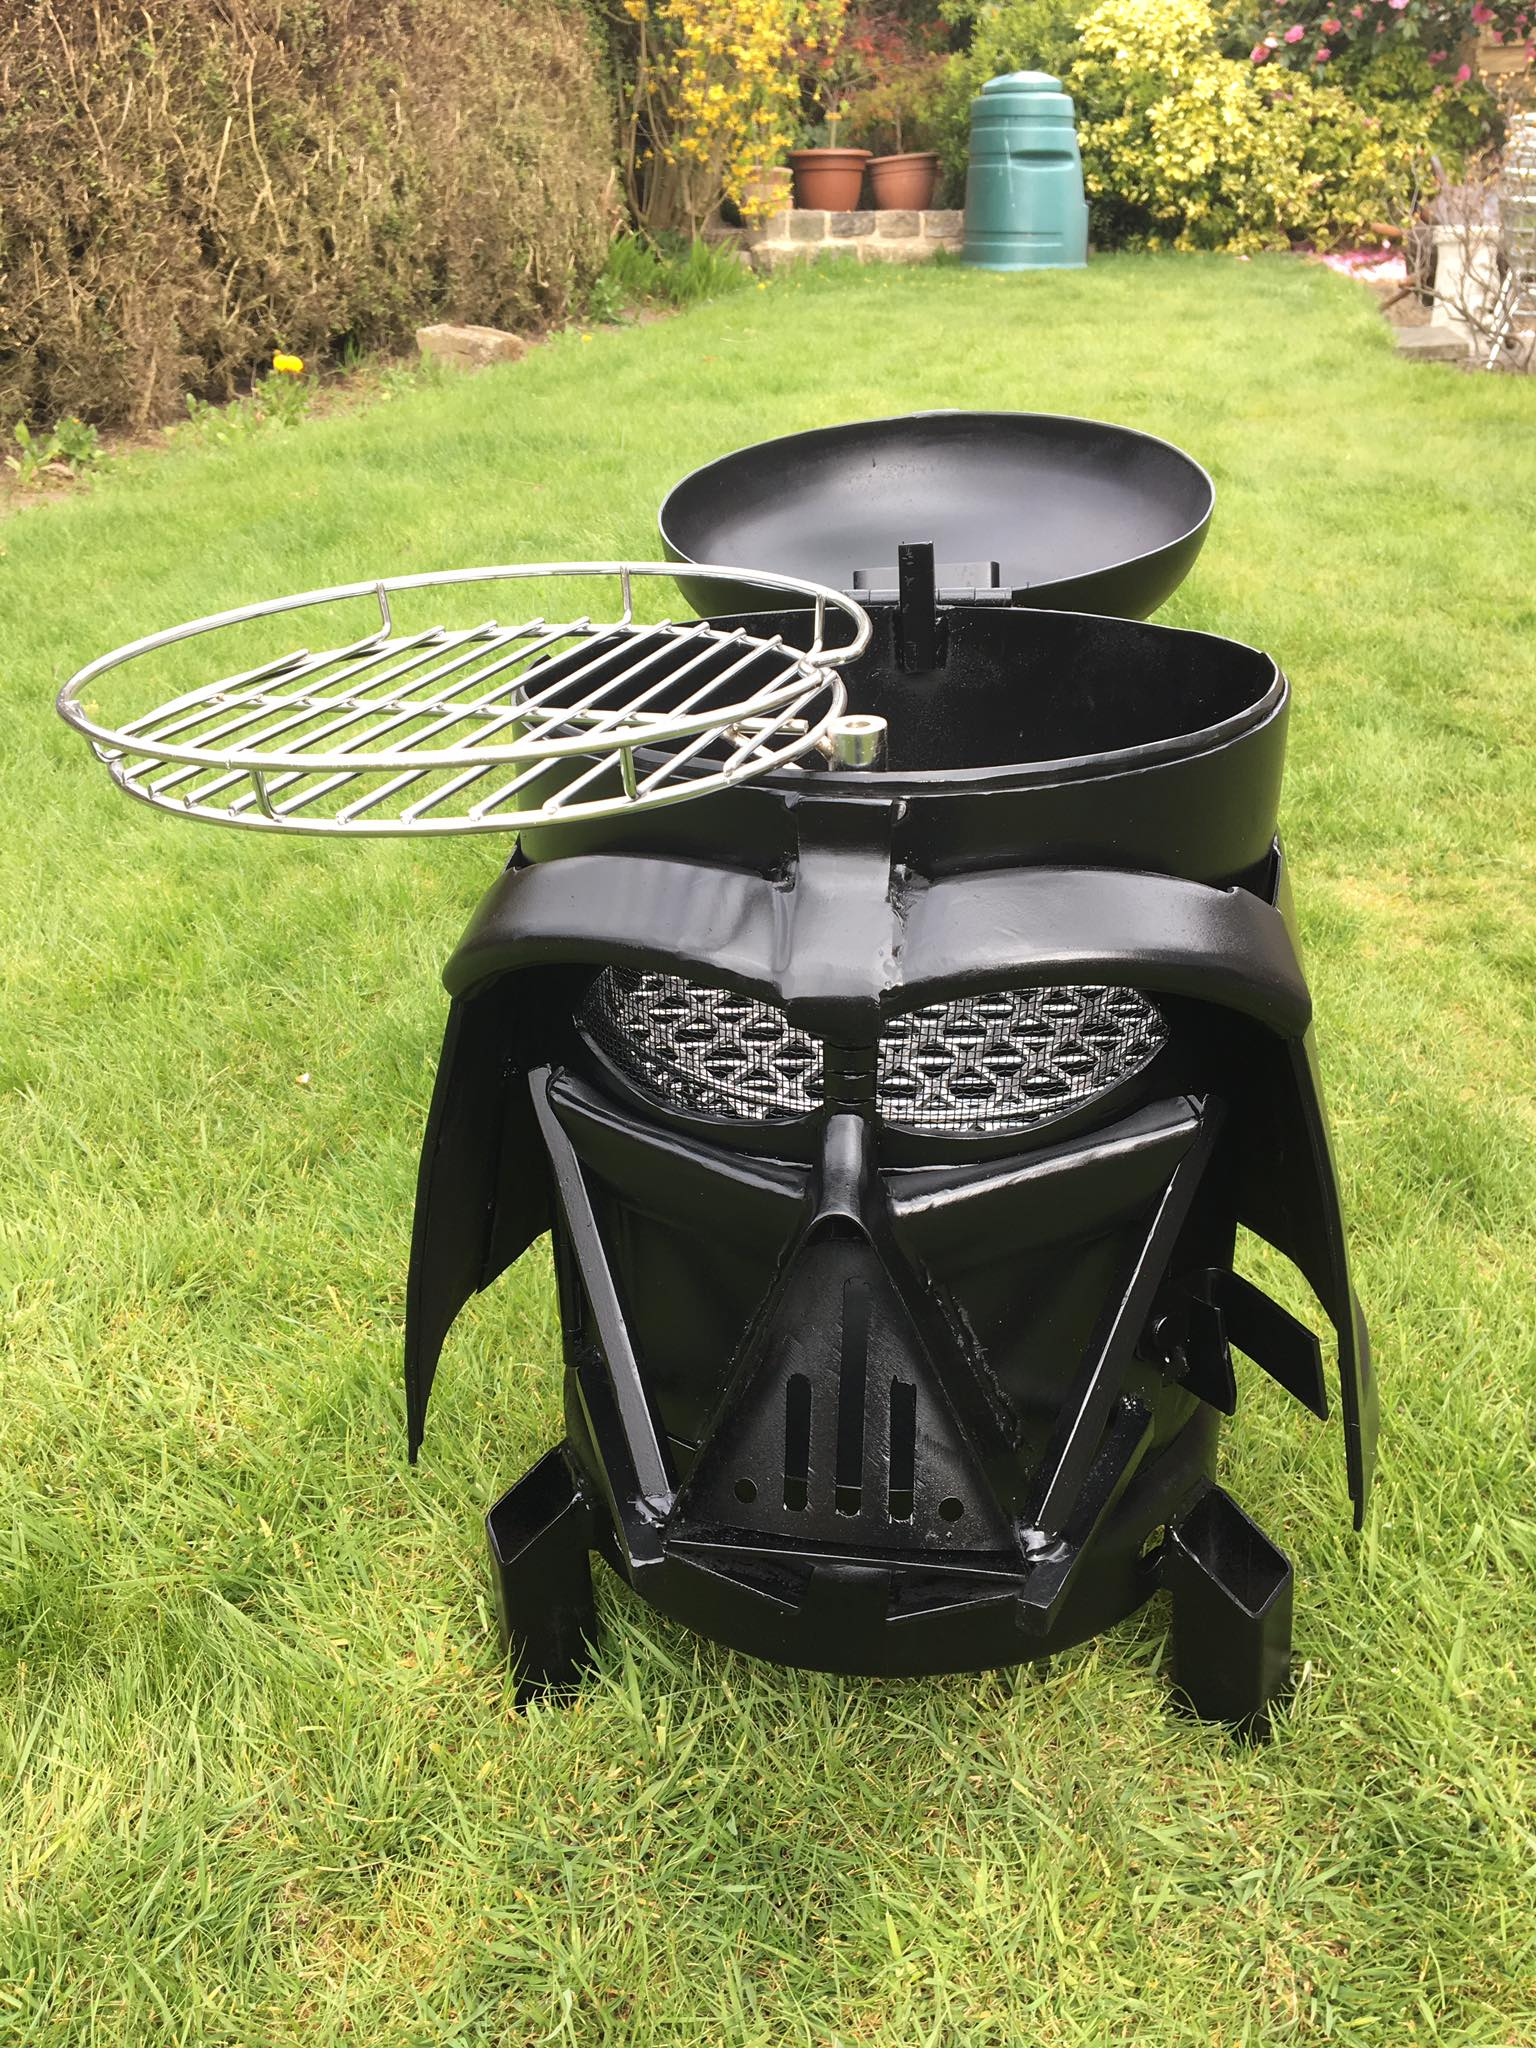 Darth Vader Mask Bbq And Fire Pit Ohgizmo